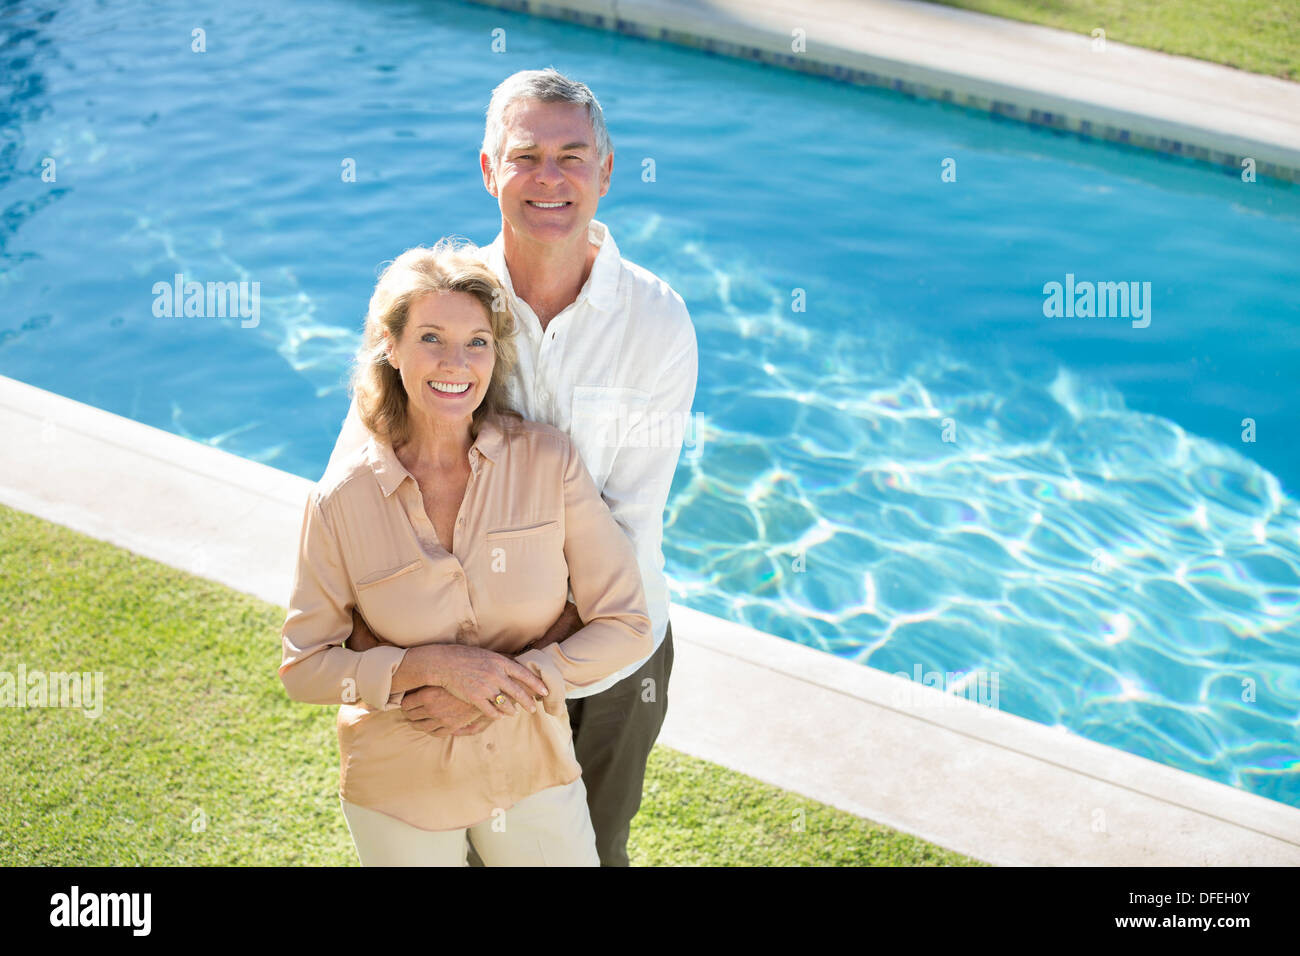 Portrait of smiling senior couple at poolside - Stock Image